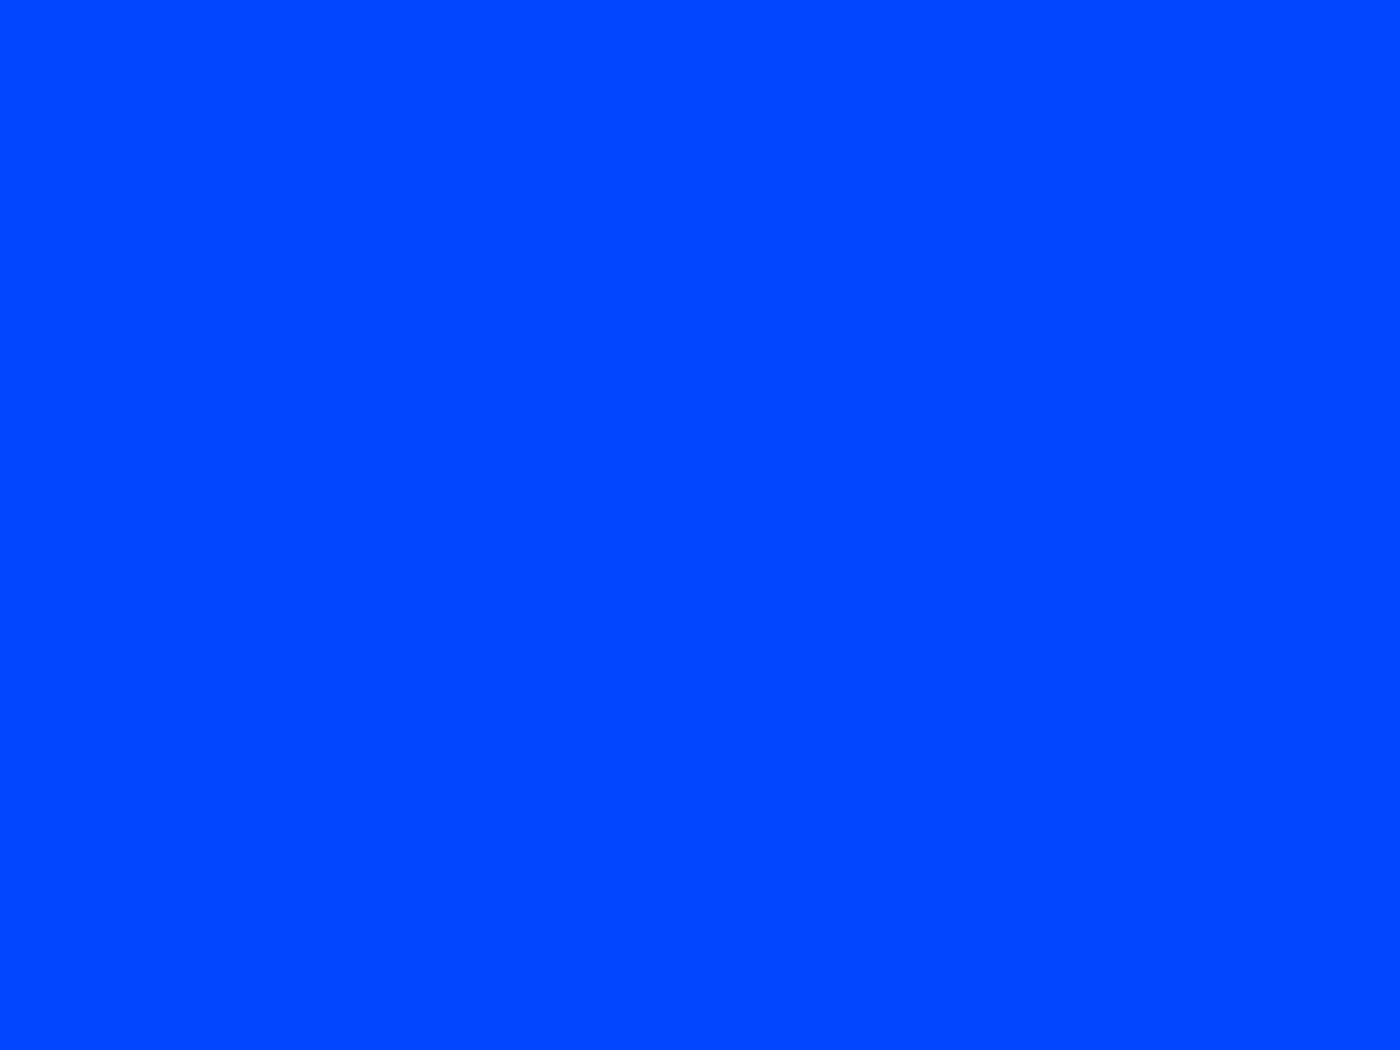 1400x1050 Blue RYB Solid Color Background